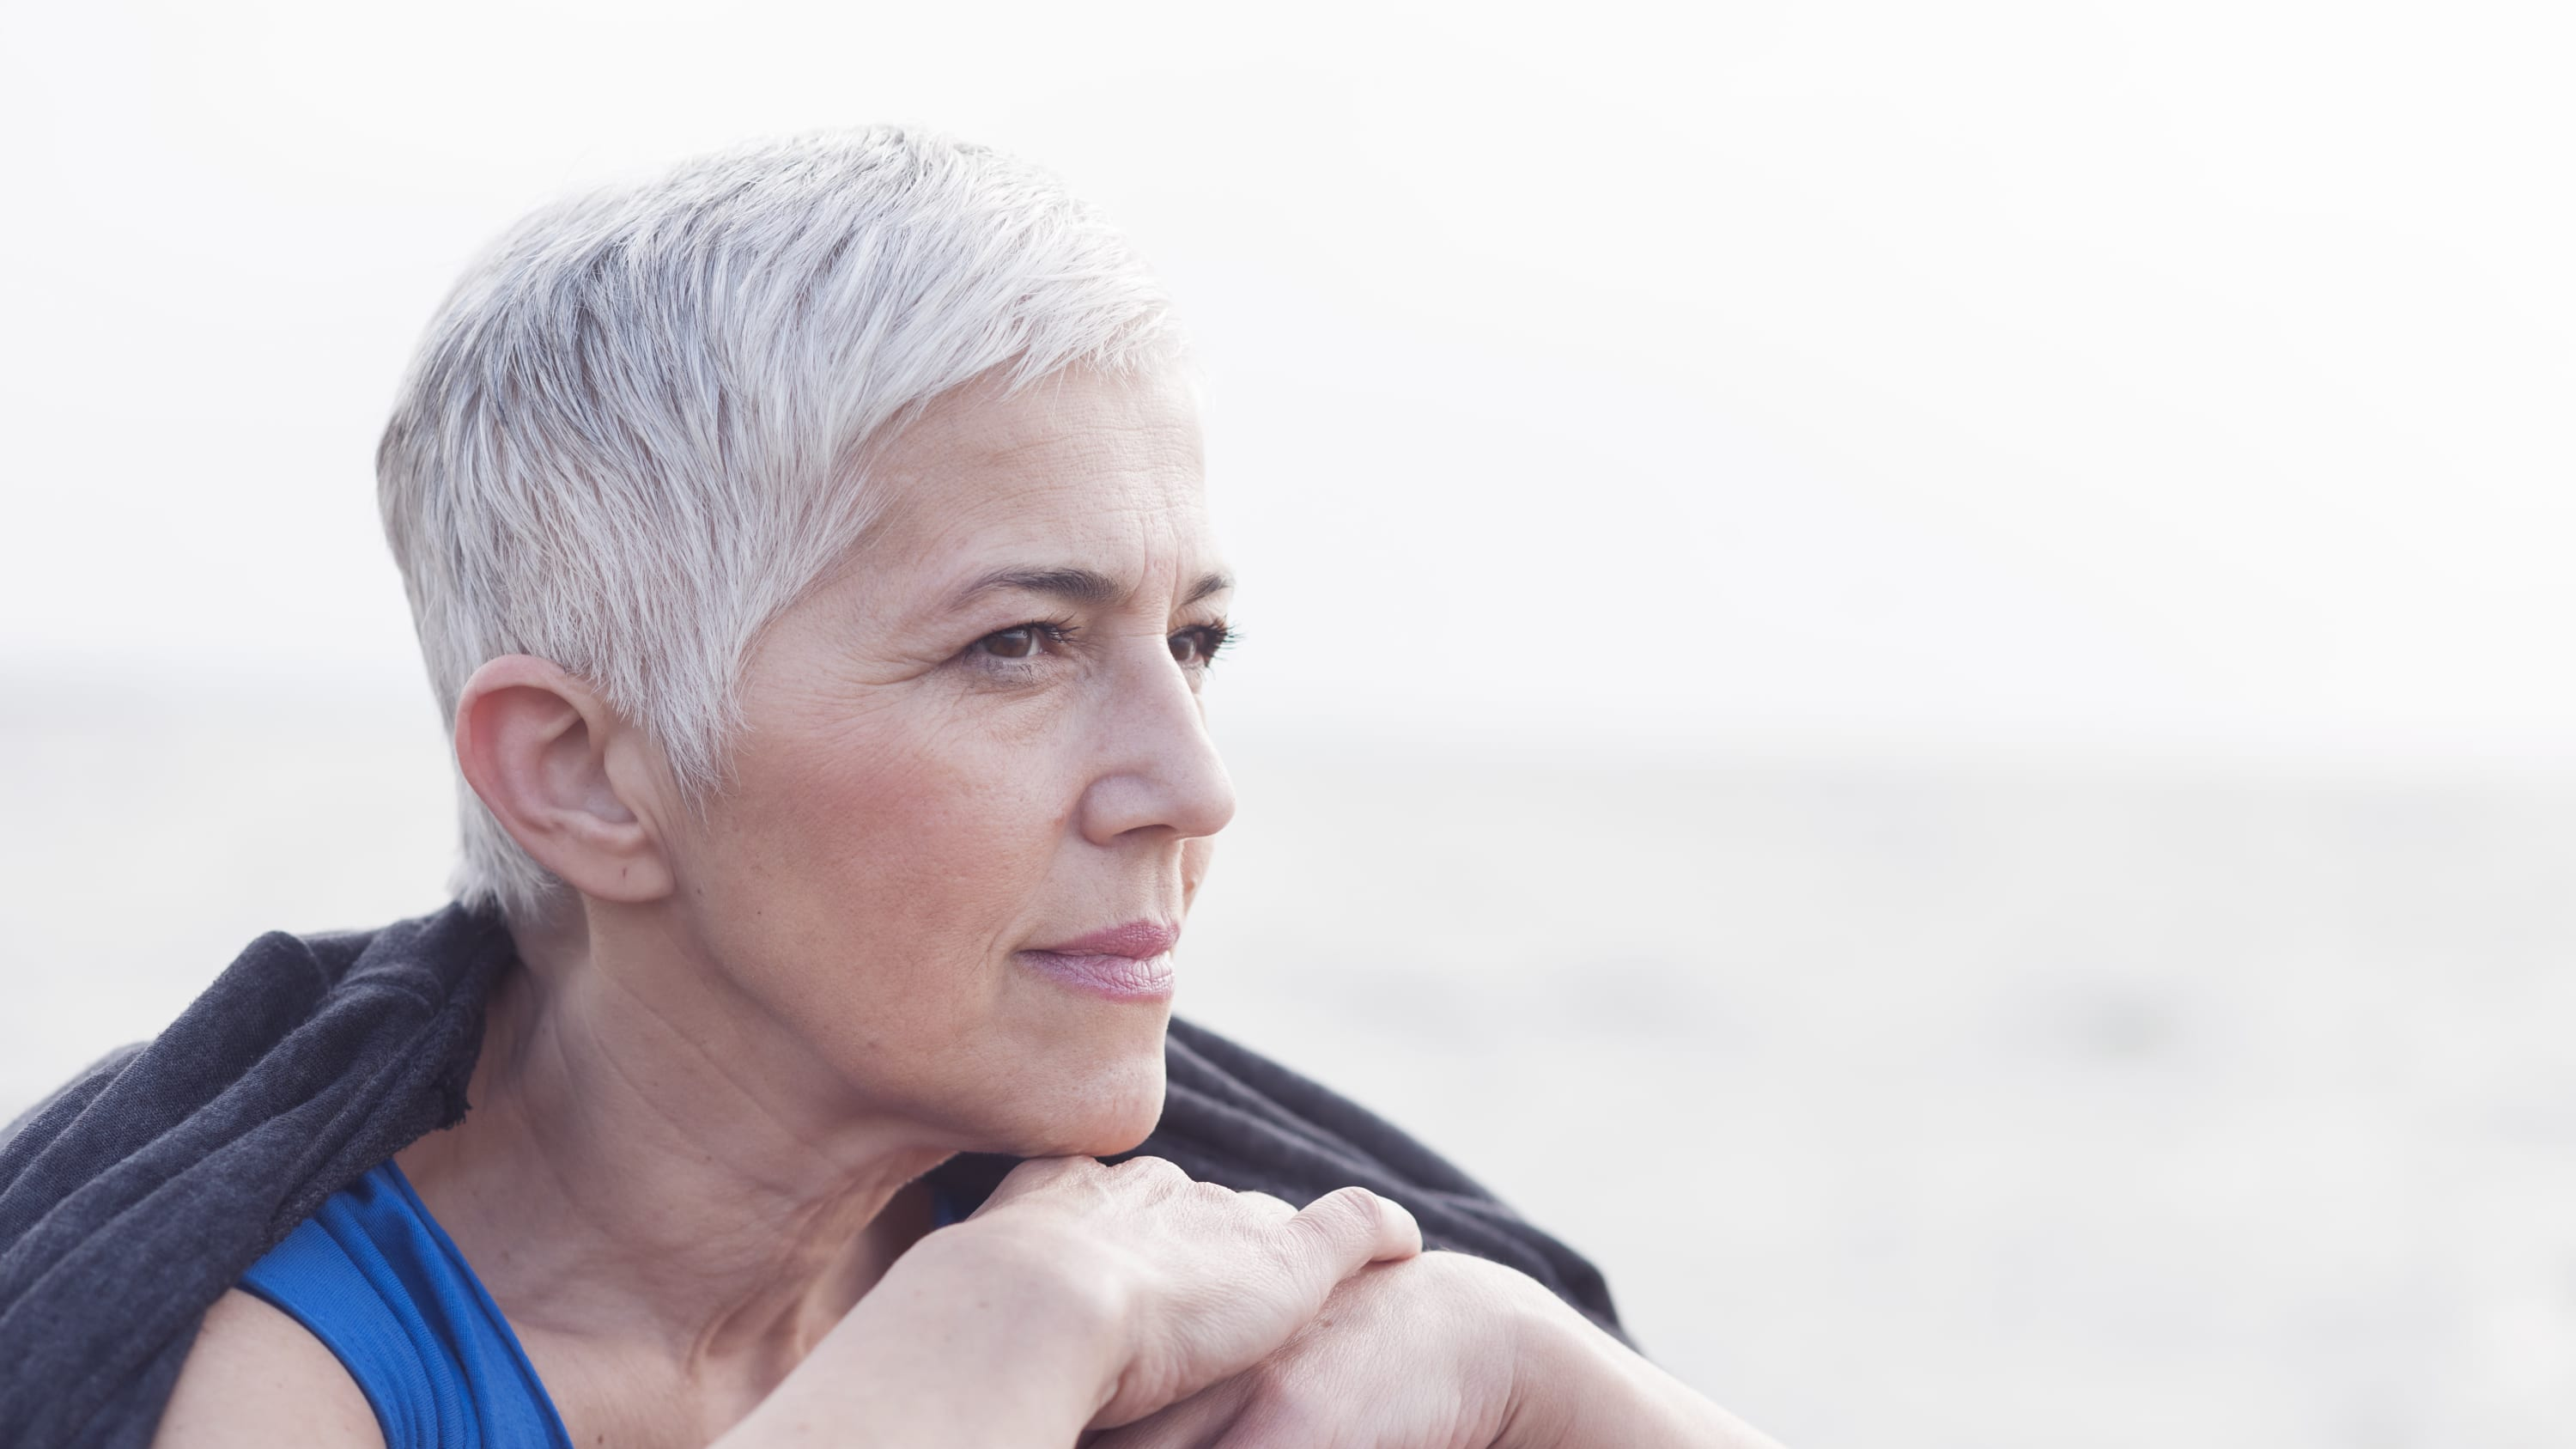 a woman with gray hair looks out at the water from a boat. she possibly has uveitis